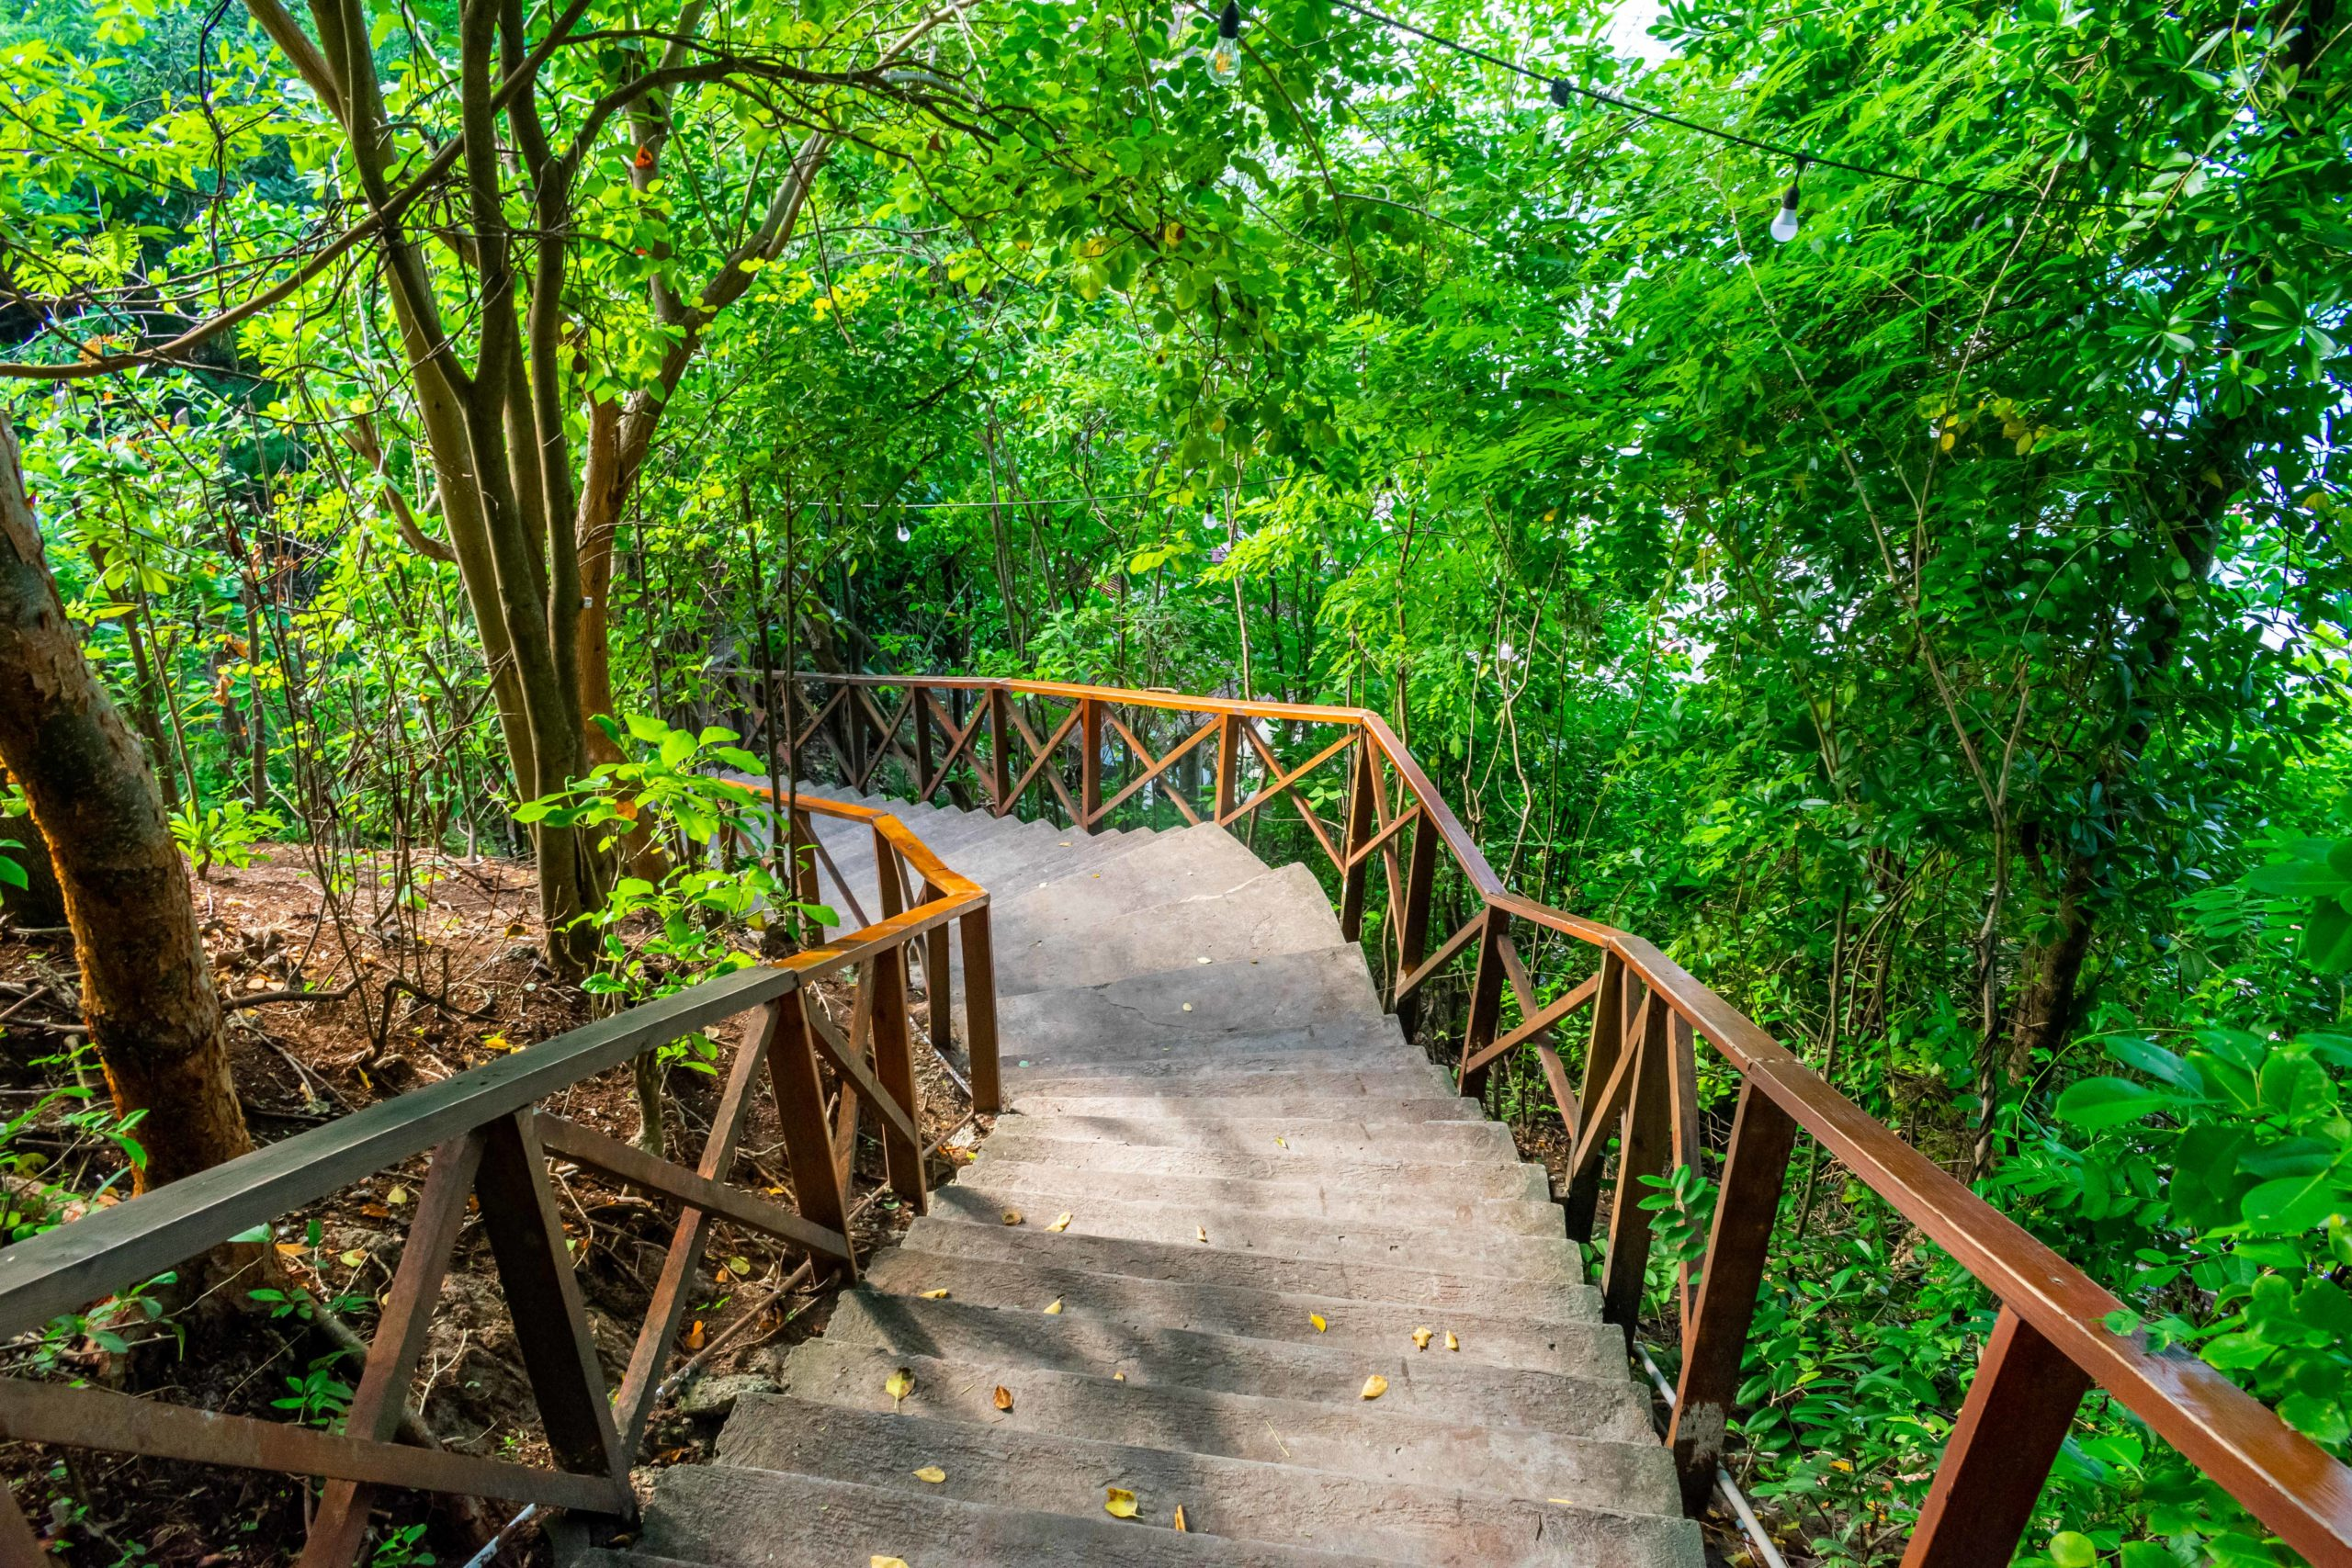 Stairway to Smuggler's Cove, Saint Lucia